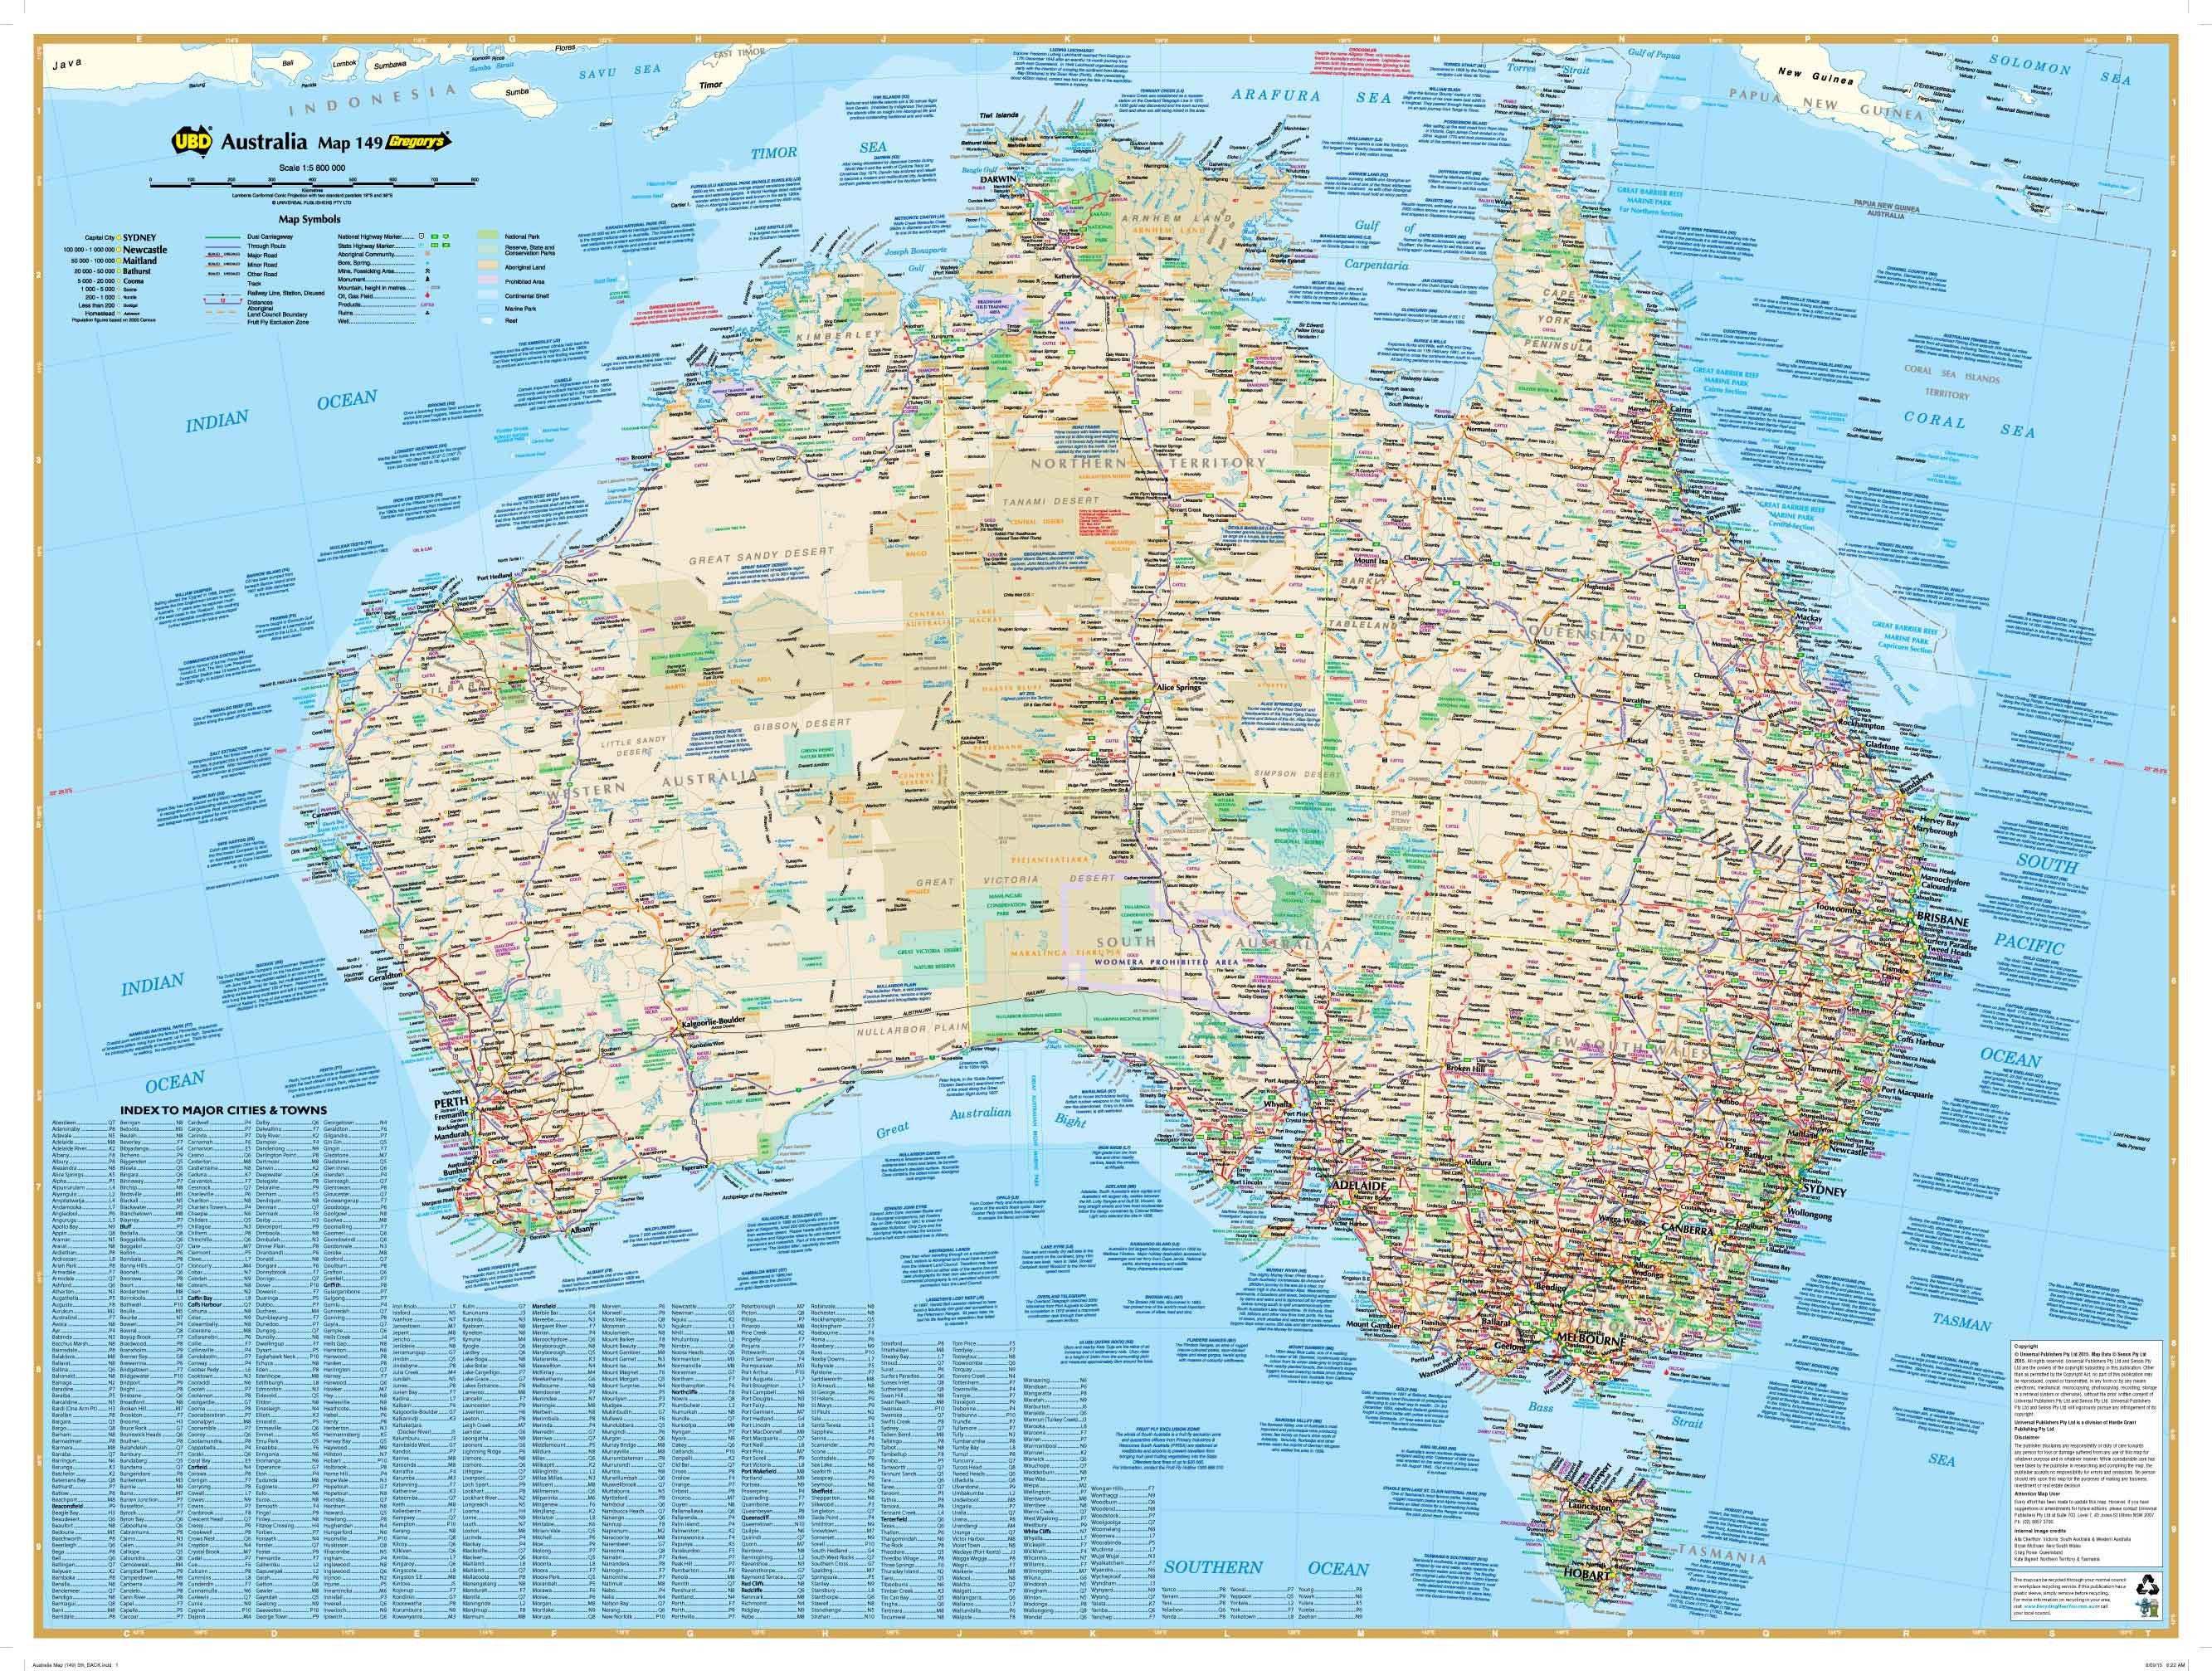 Large Map Of Australia.Australia 149 Gregory S Large 920 X 675mm Laminated Wall Map